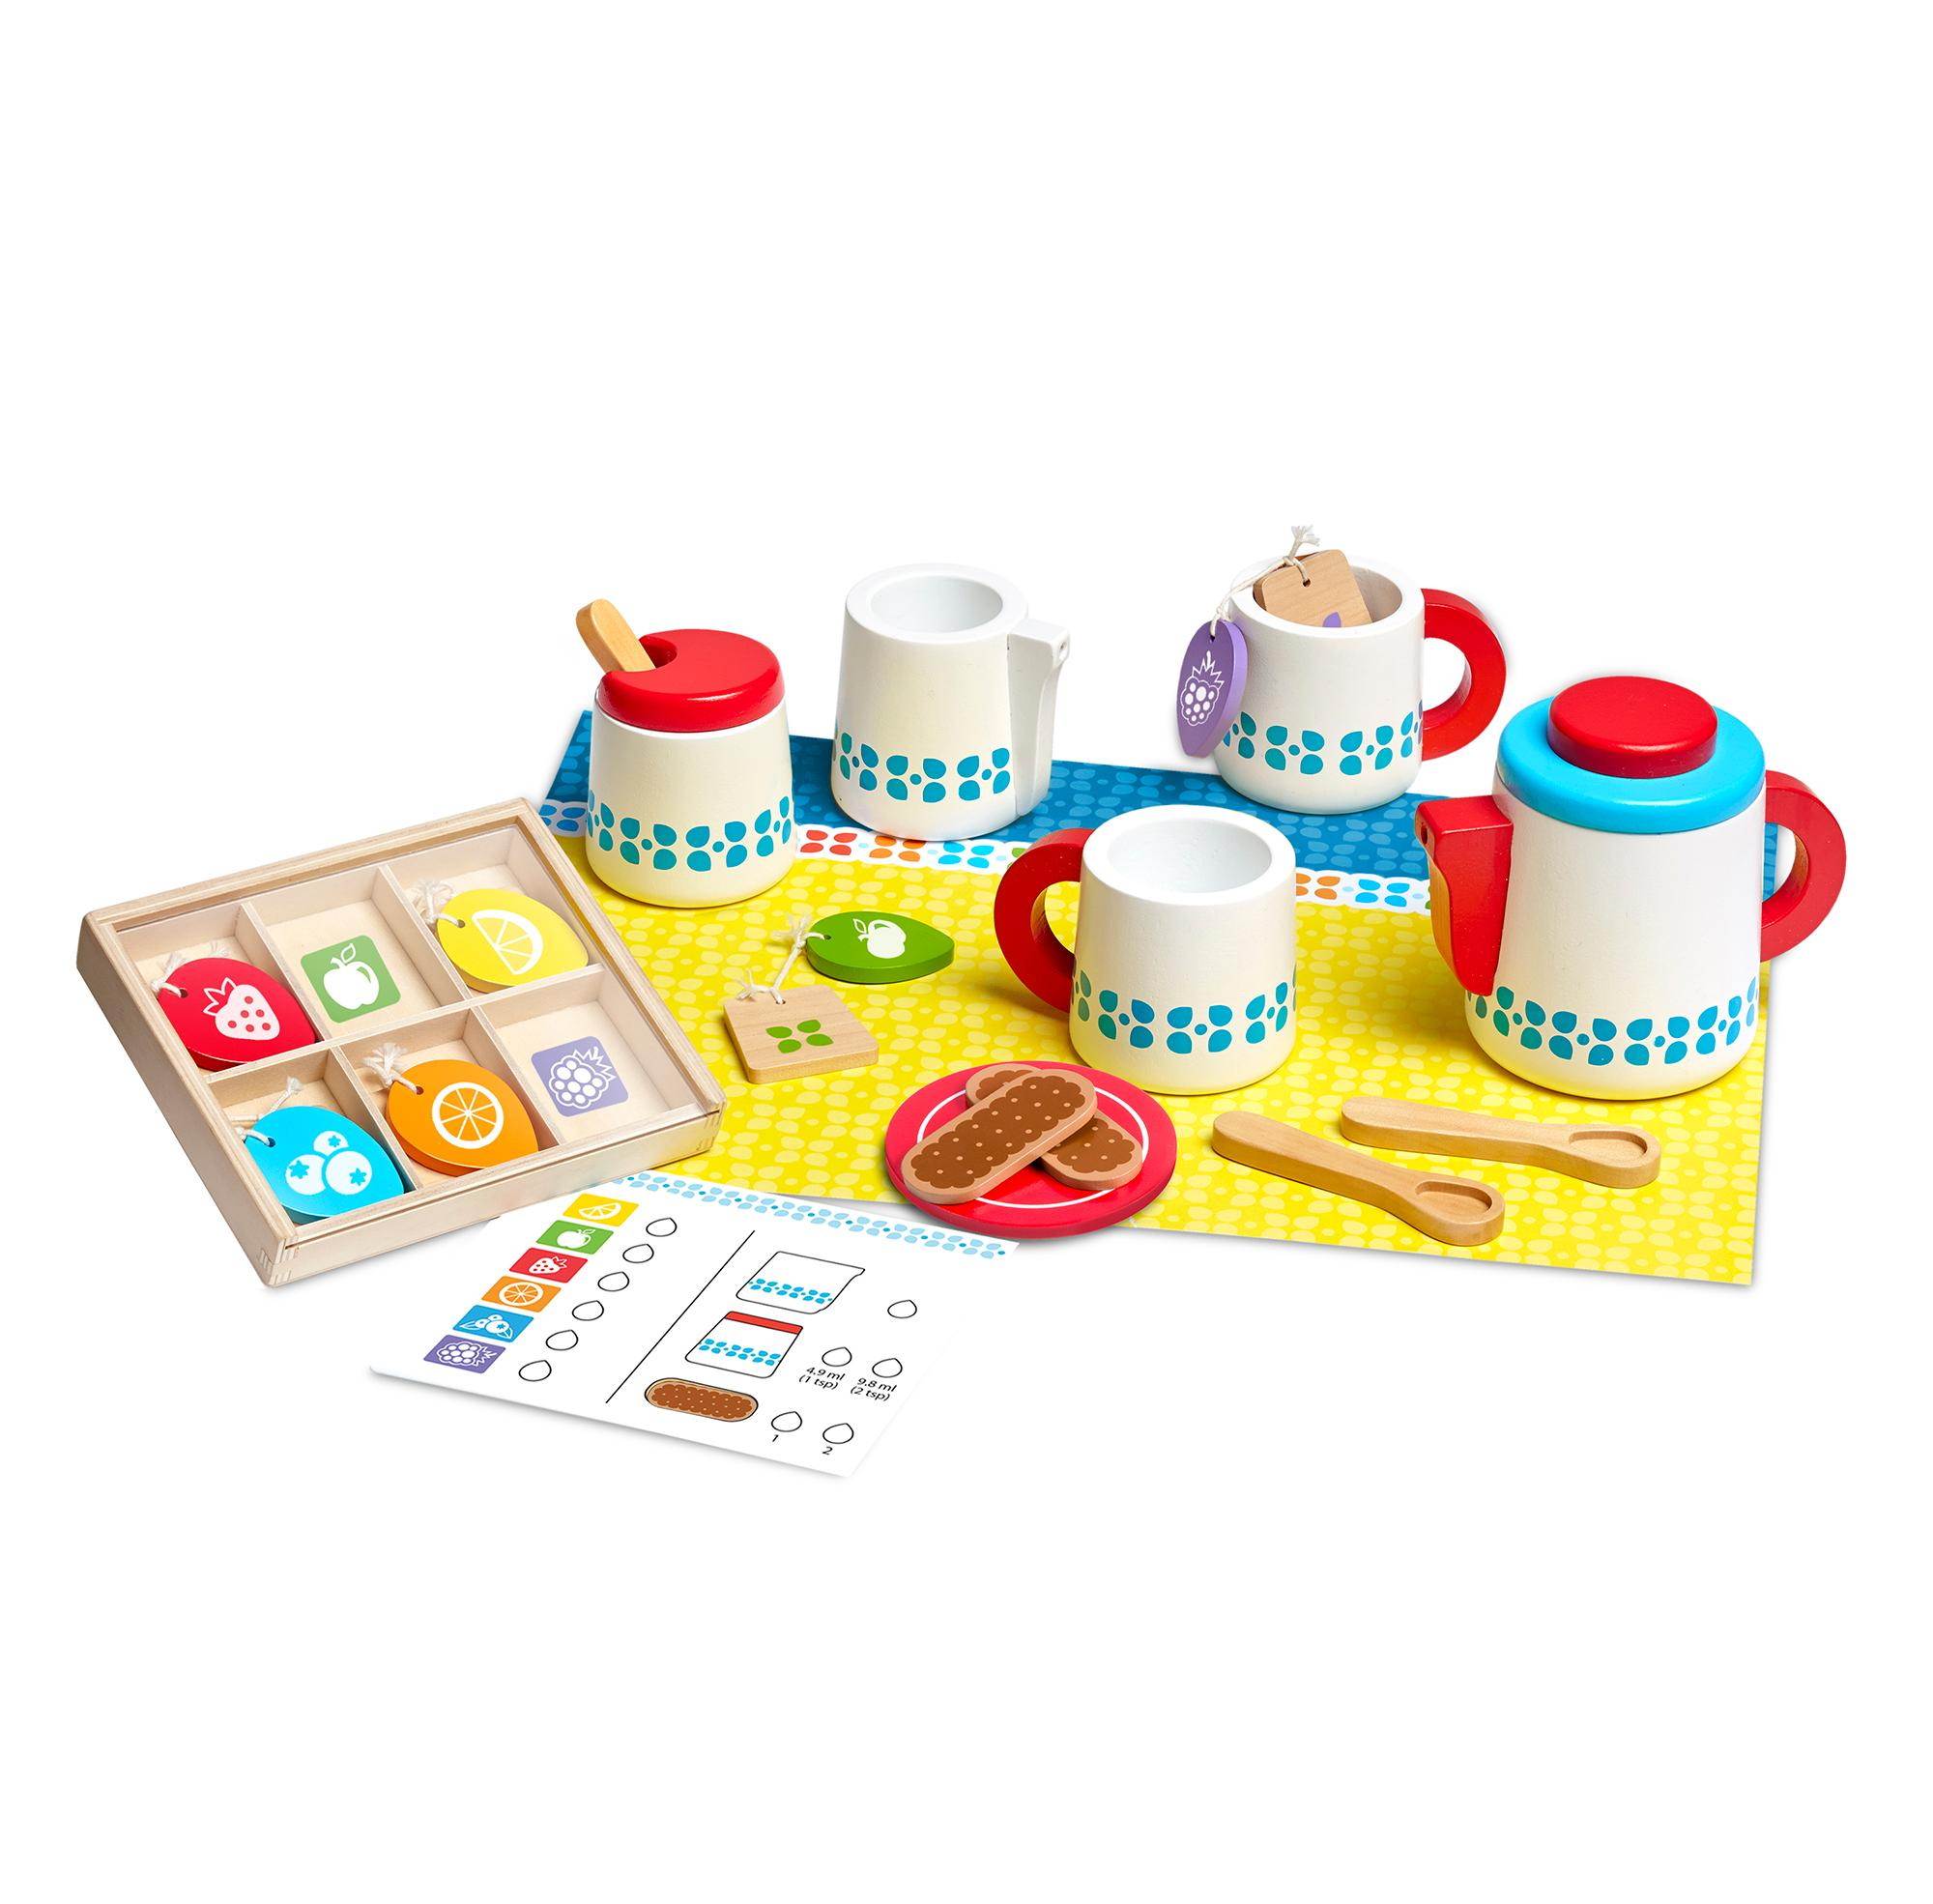 Melissa & Doug Wooden Make-a-Cake Mixer Set, Play Food and Kitchen ...